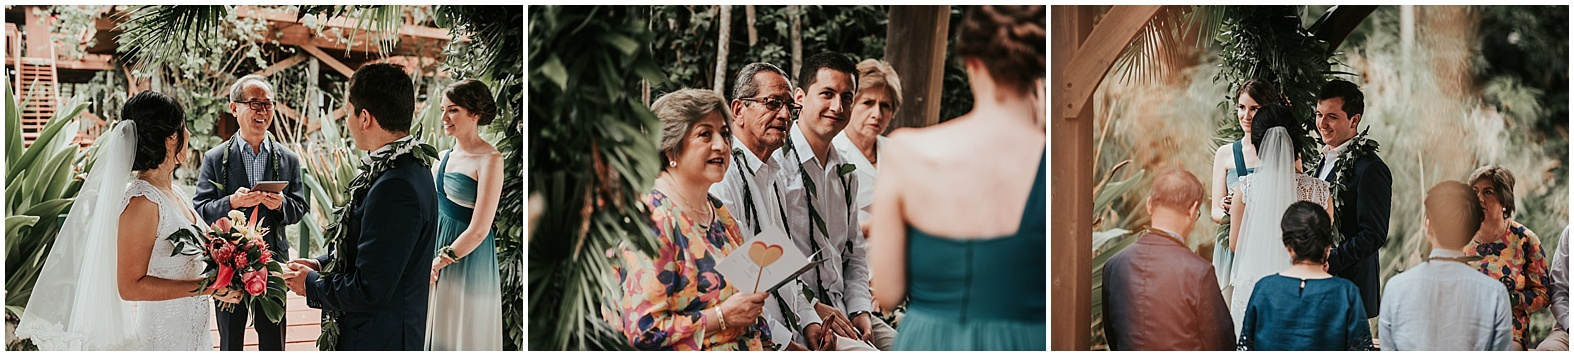 Oahu wedding photographer35